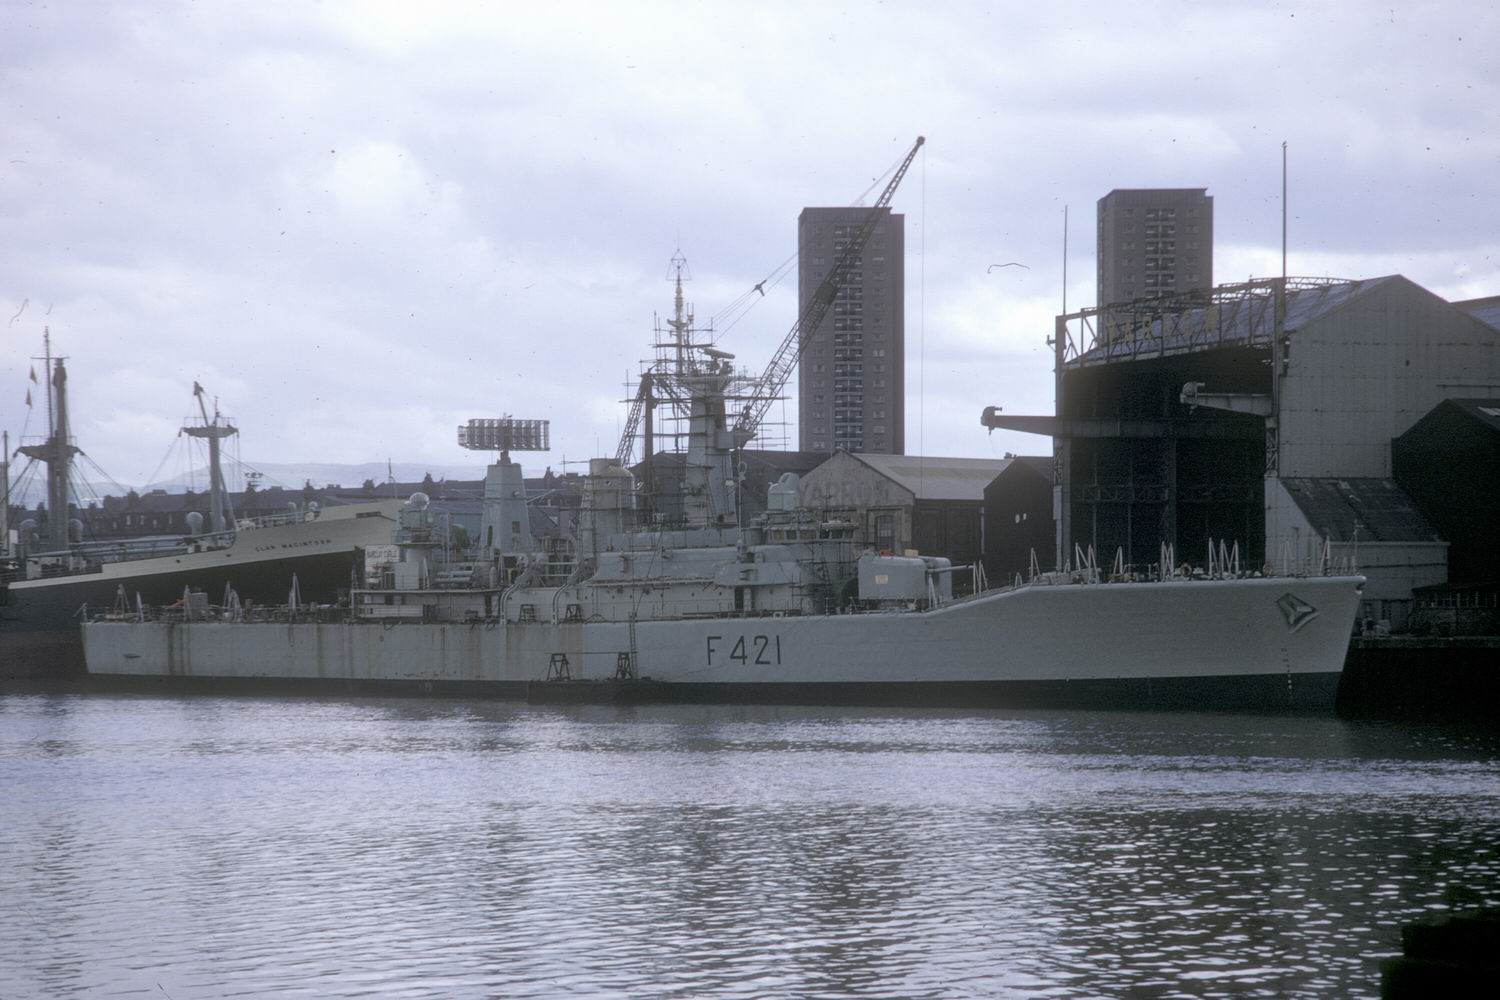 Steam Turbine CANTERBURY built by Yarrow Shipbuilders Ltd  in 1971